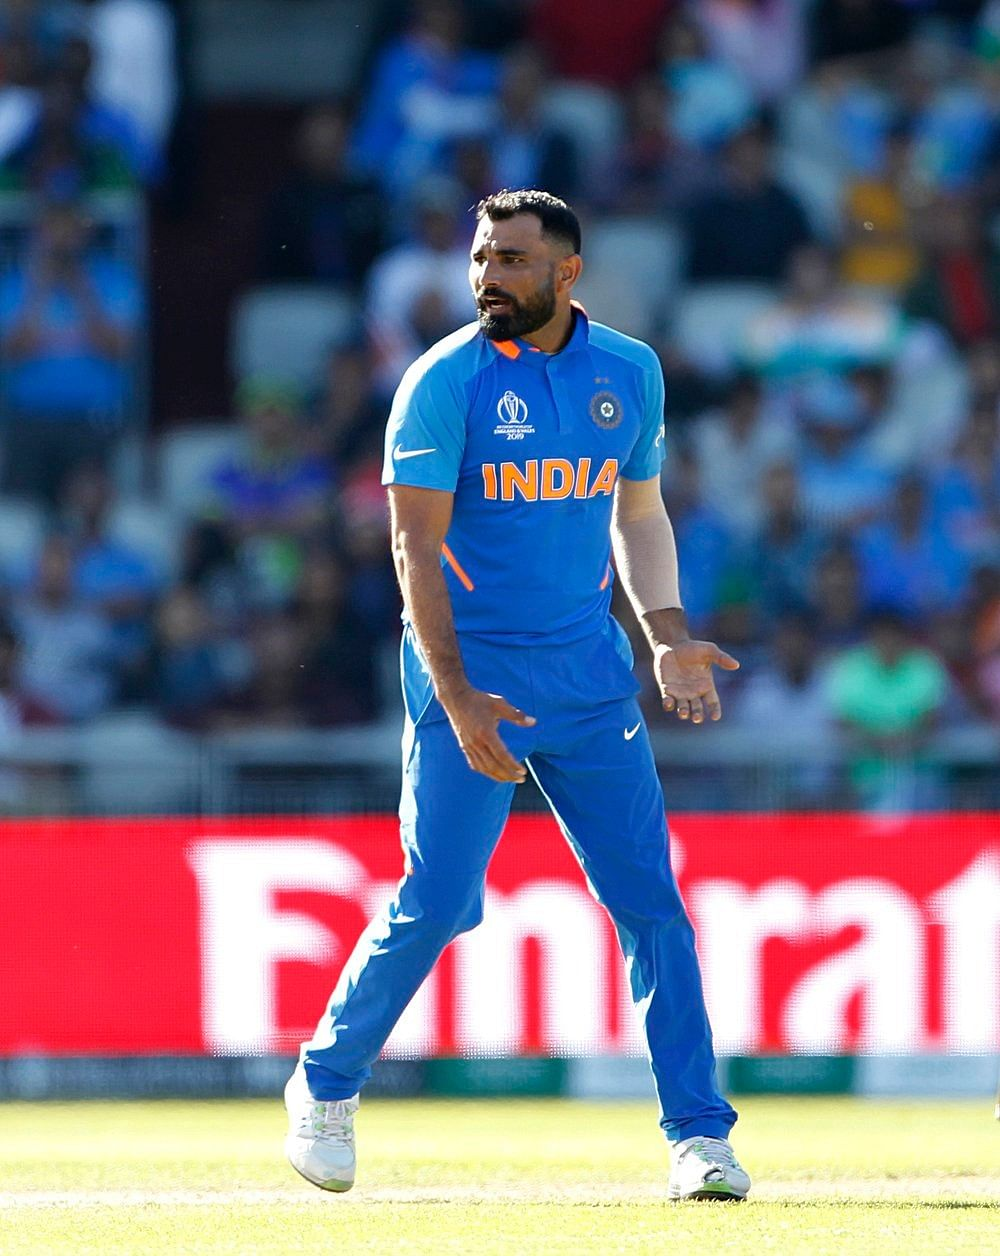 Indian bowler Mohammad Shami celebrates after taking the wicket of Oshane Thomas during a match against West Indies in ICC CWC 2019 at Old Trafford in Manchester on Thursday.